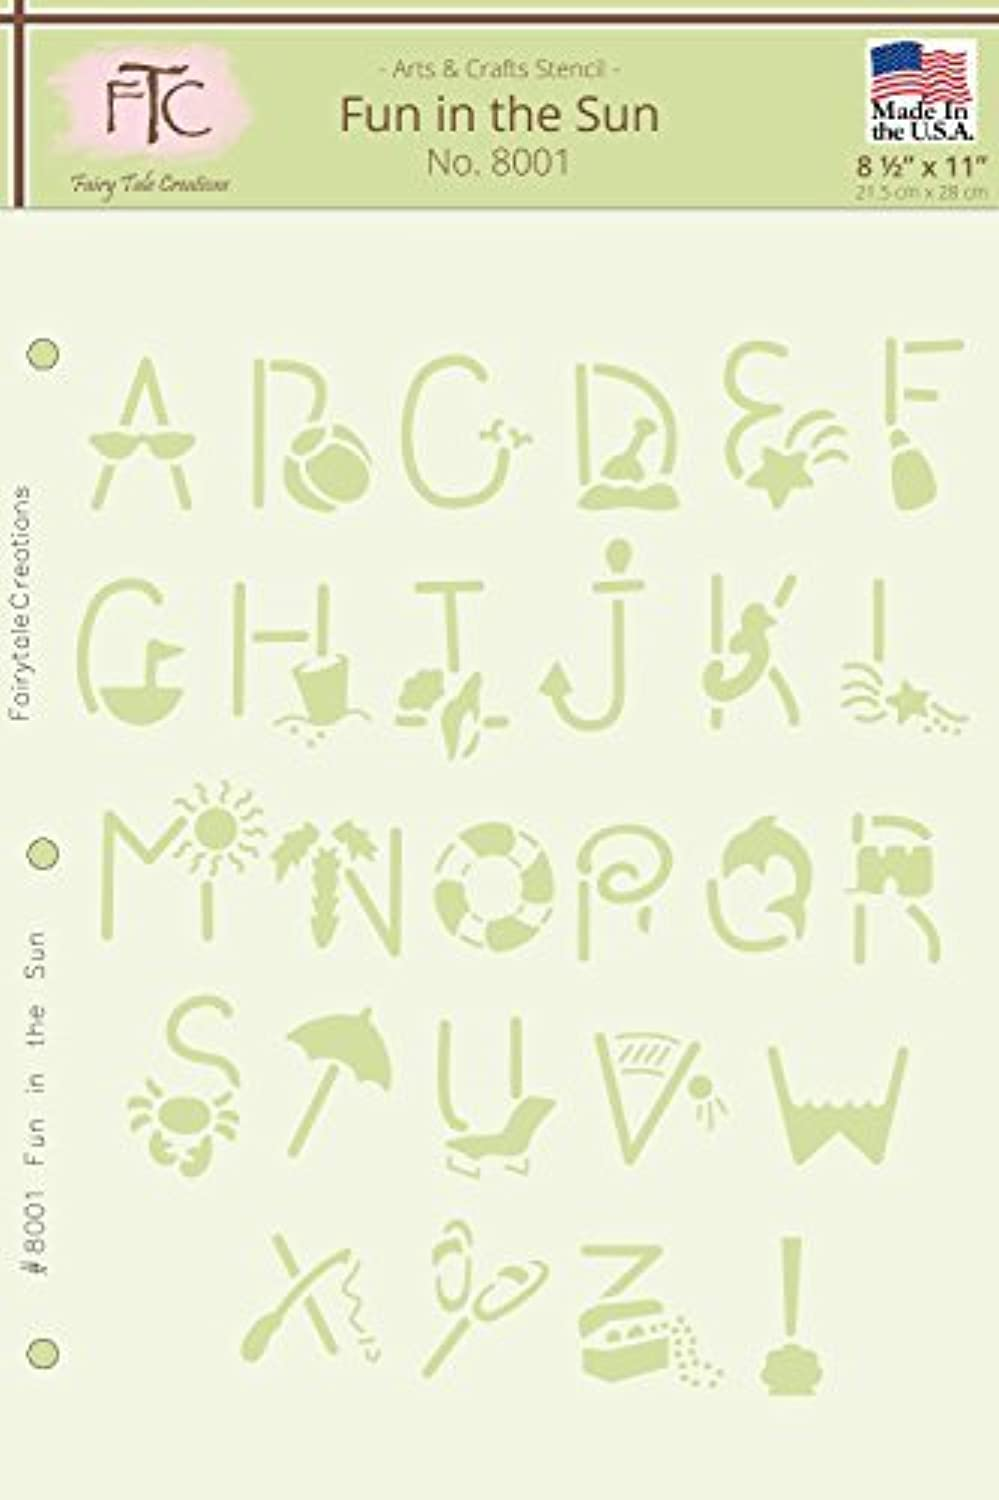 Fairytale Creations Fun in the Sun Alphabet Stencil, 8.5 L x 11 H by Fairytale Creations B01KB7E0M0 | Sonderkauf